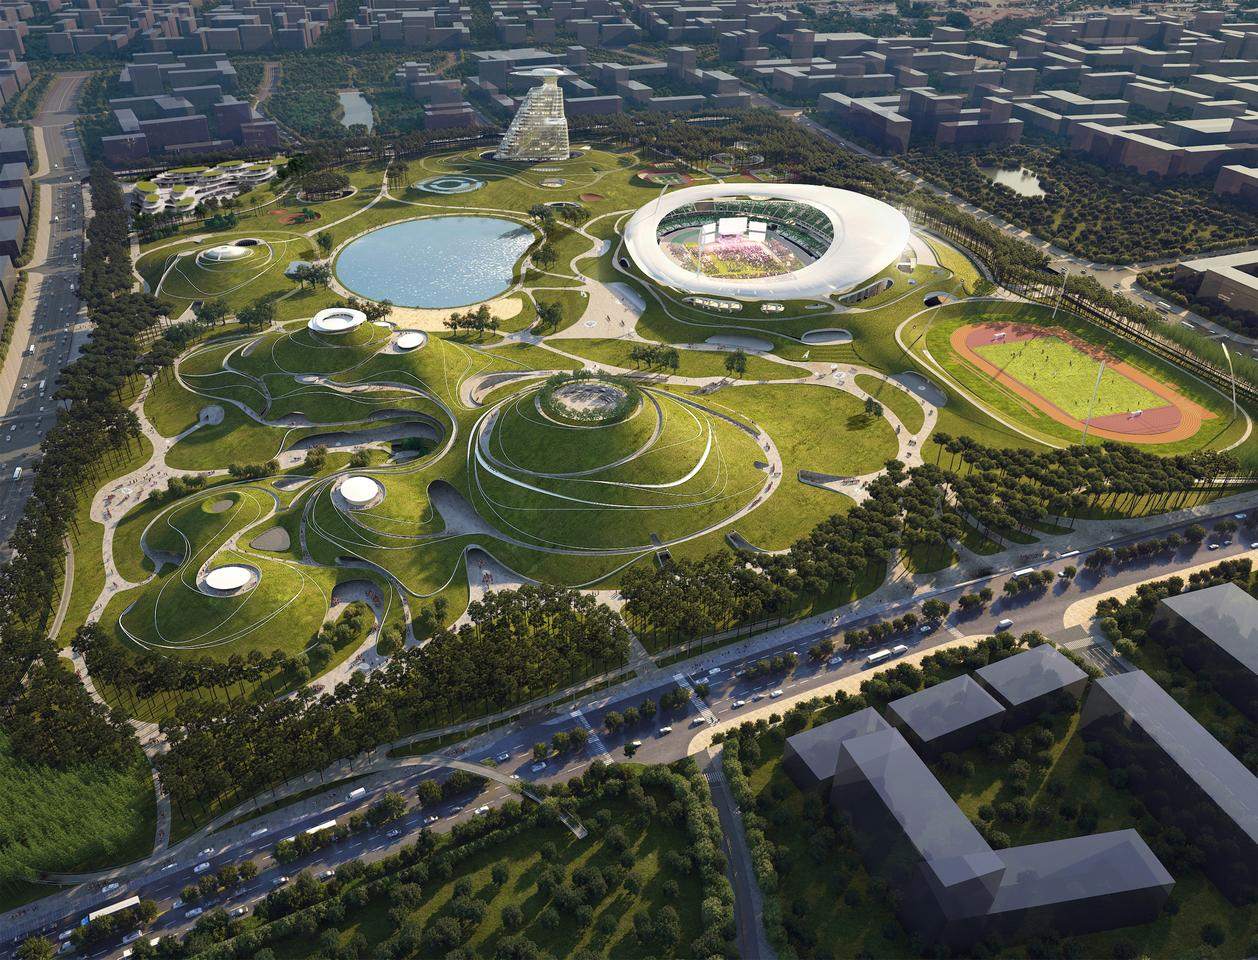 The first phase of Quzhou Sports Park is expected to be completed in 2021